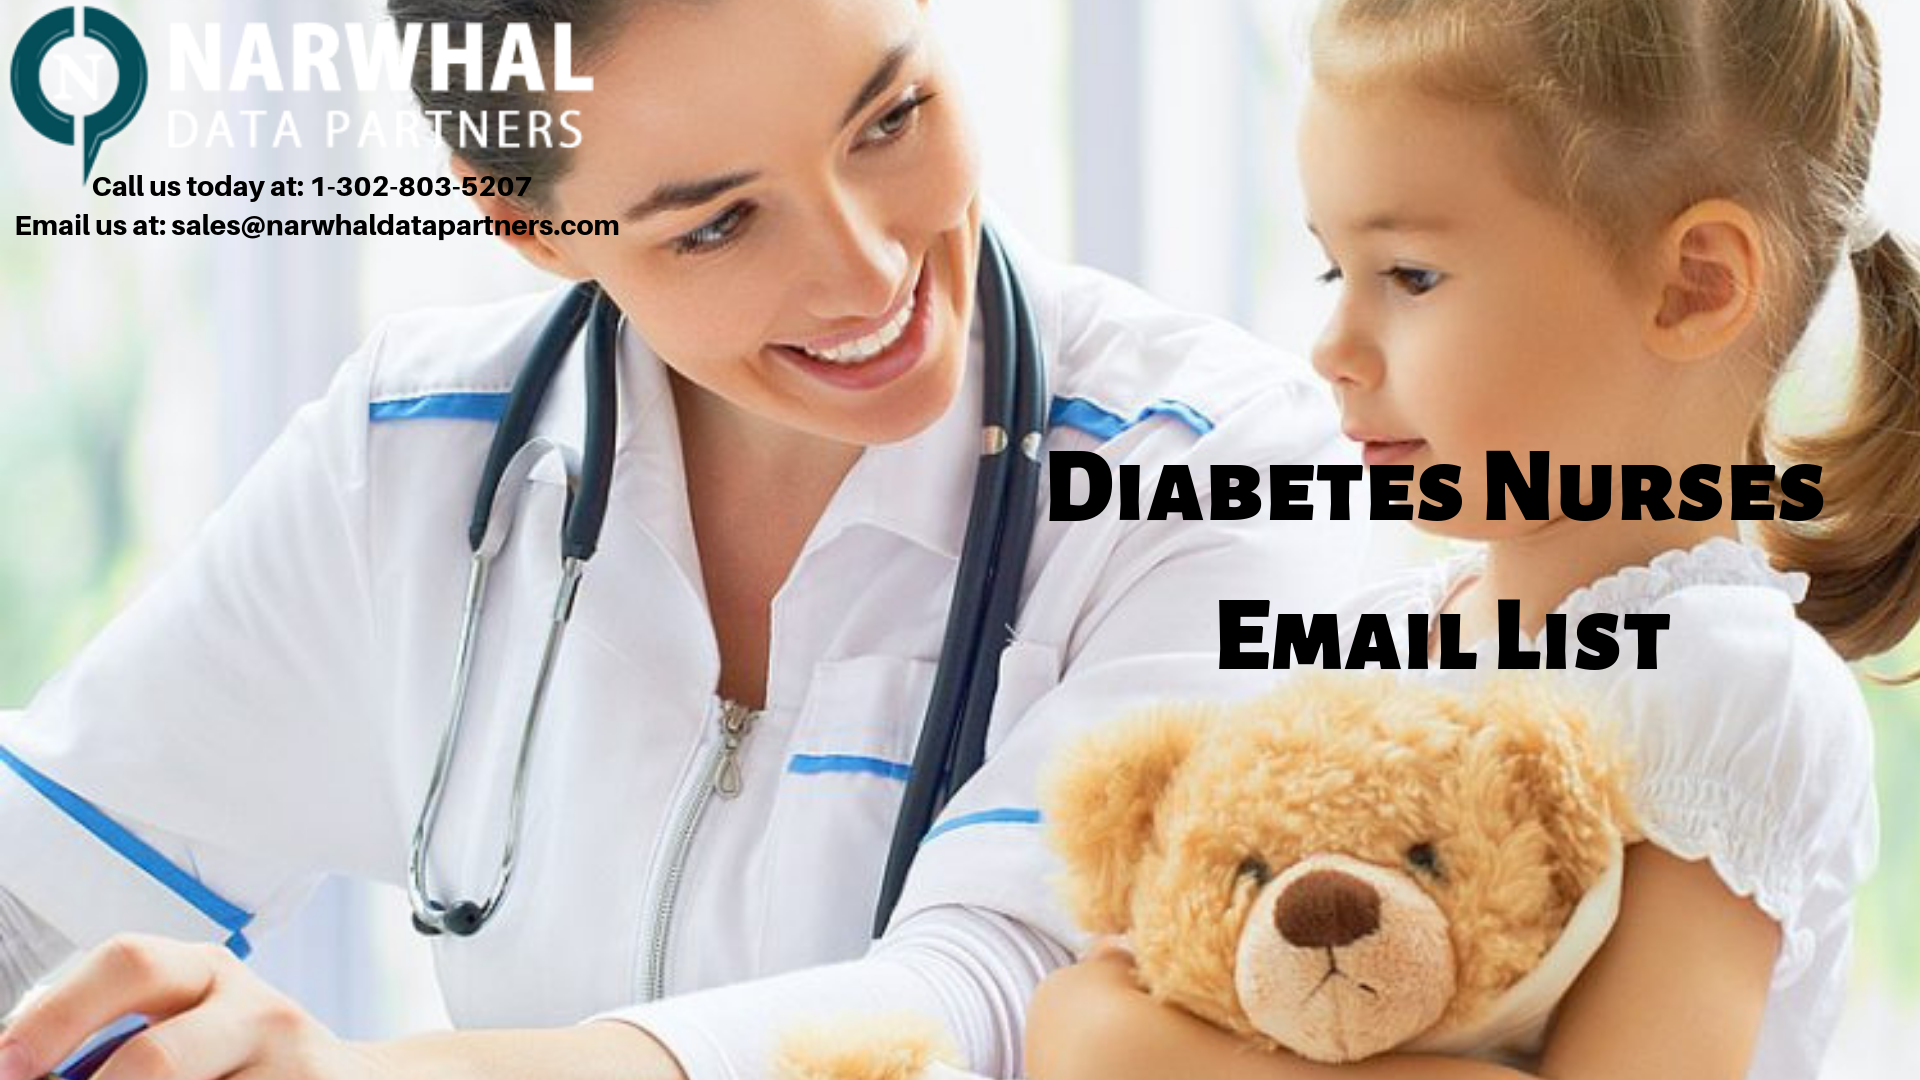 http://narwhaldatapartners.com/diabetes-nurses-email-list.html